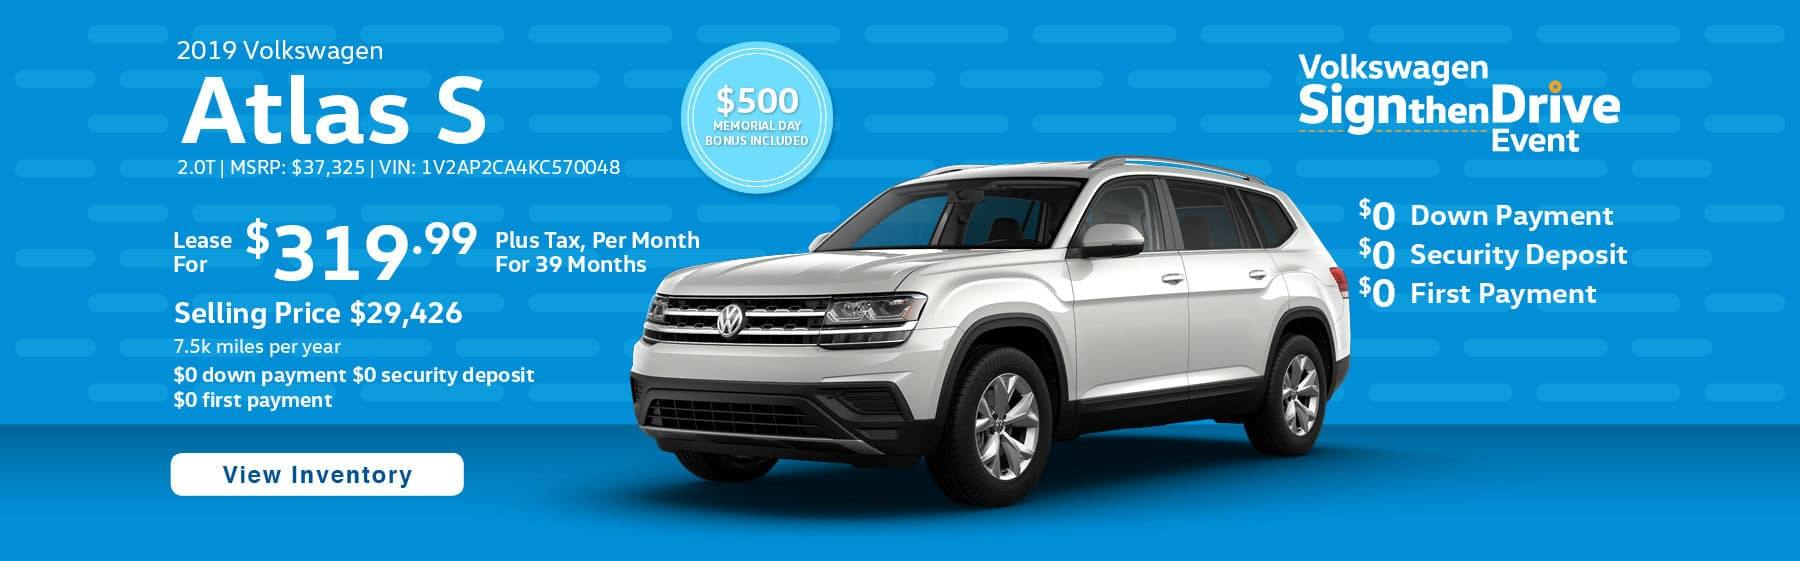 ease the 2019 Atlas 2.0T S for $319.99 per month, plus tax for 39 months.